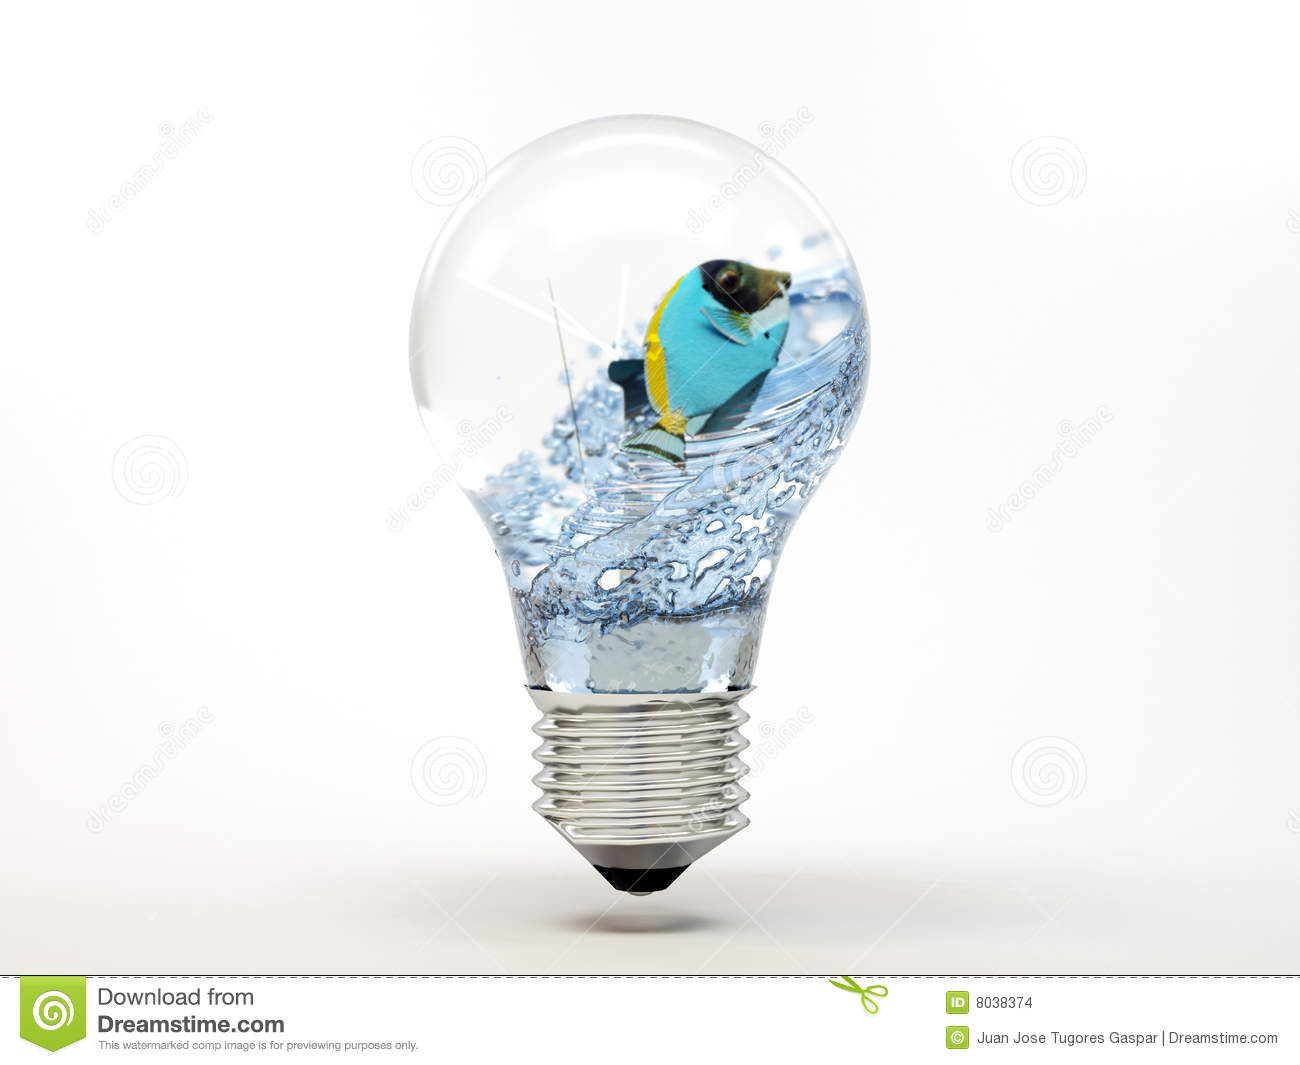 Fish swimming in light bulb stock photo image 8038374 for Dream of fish swimming